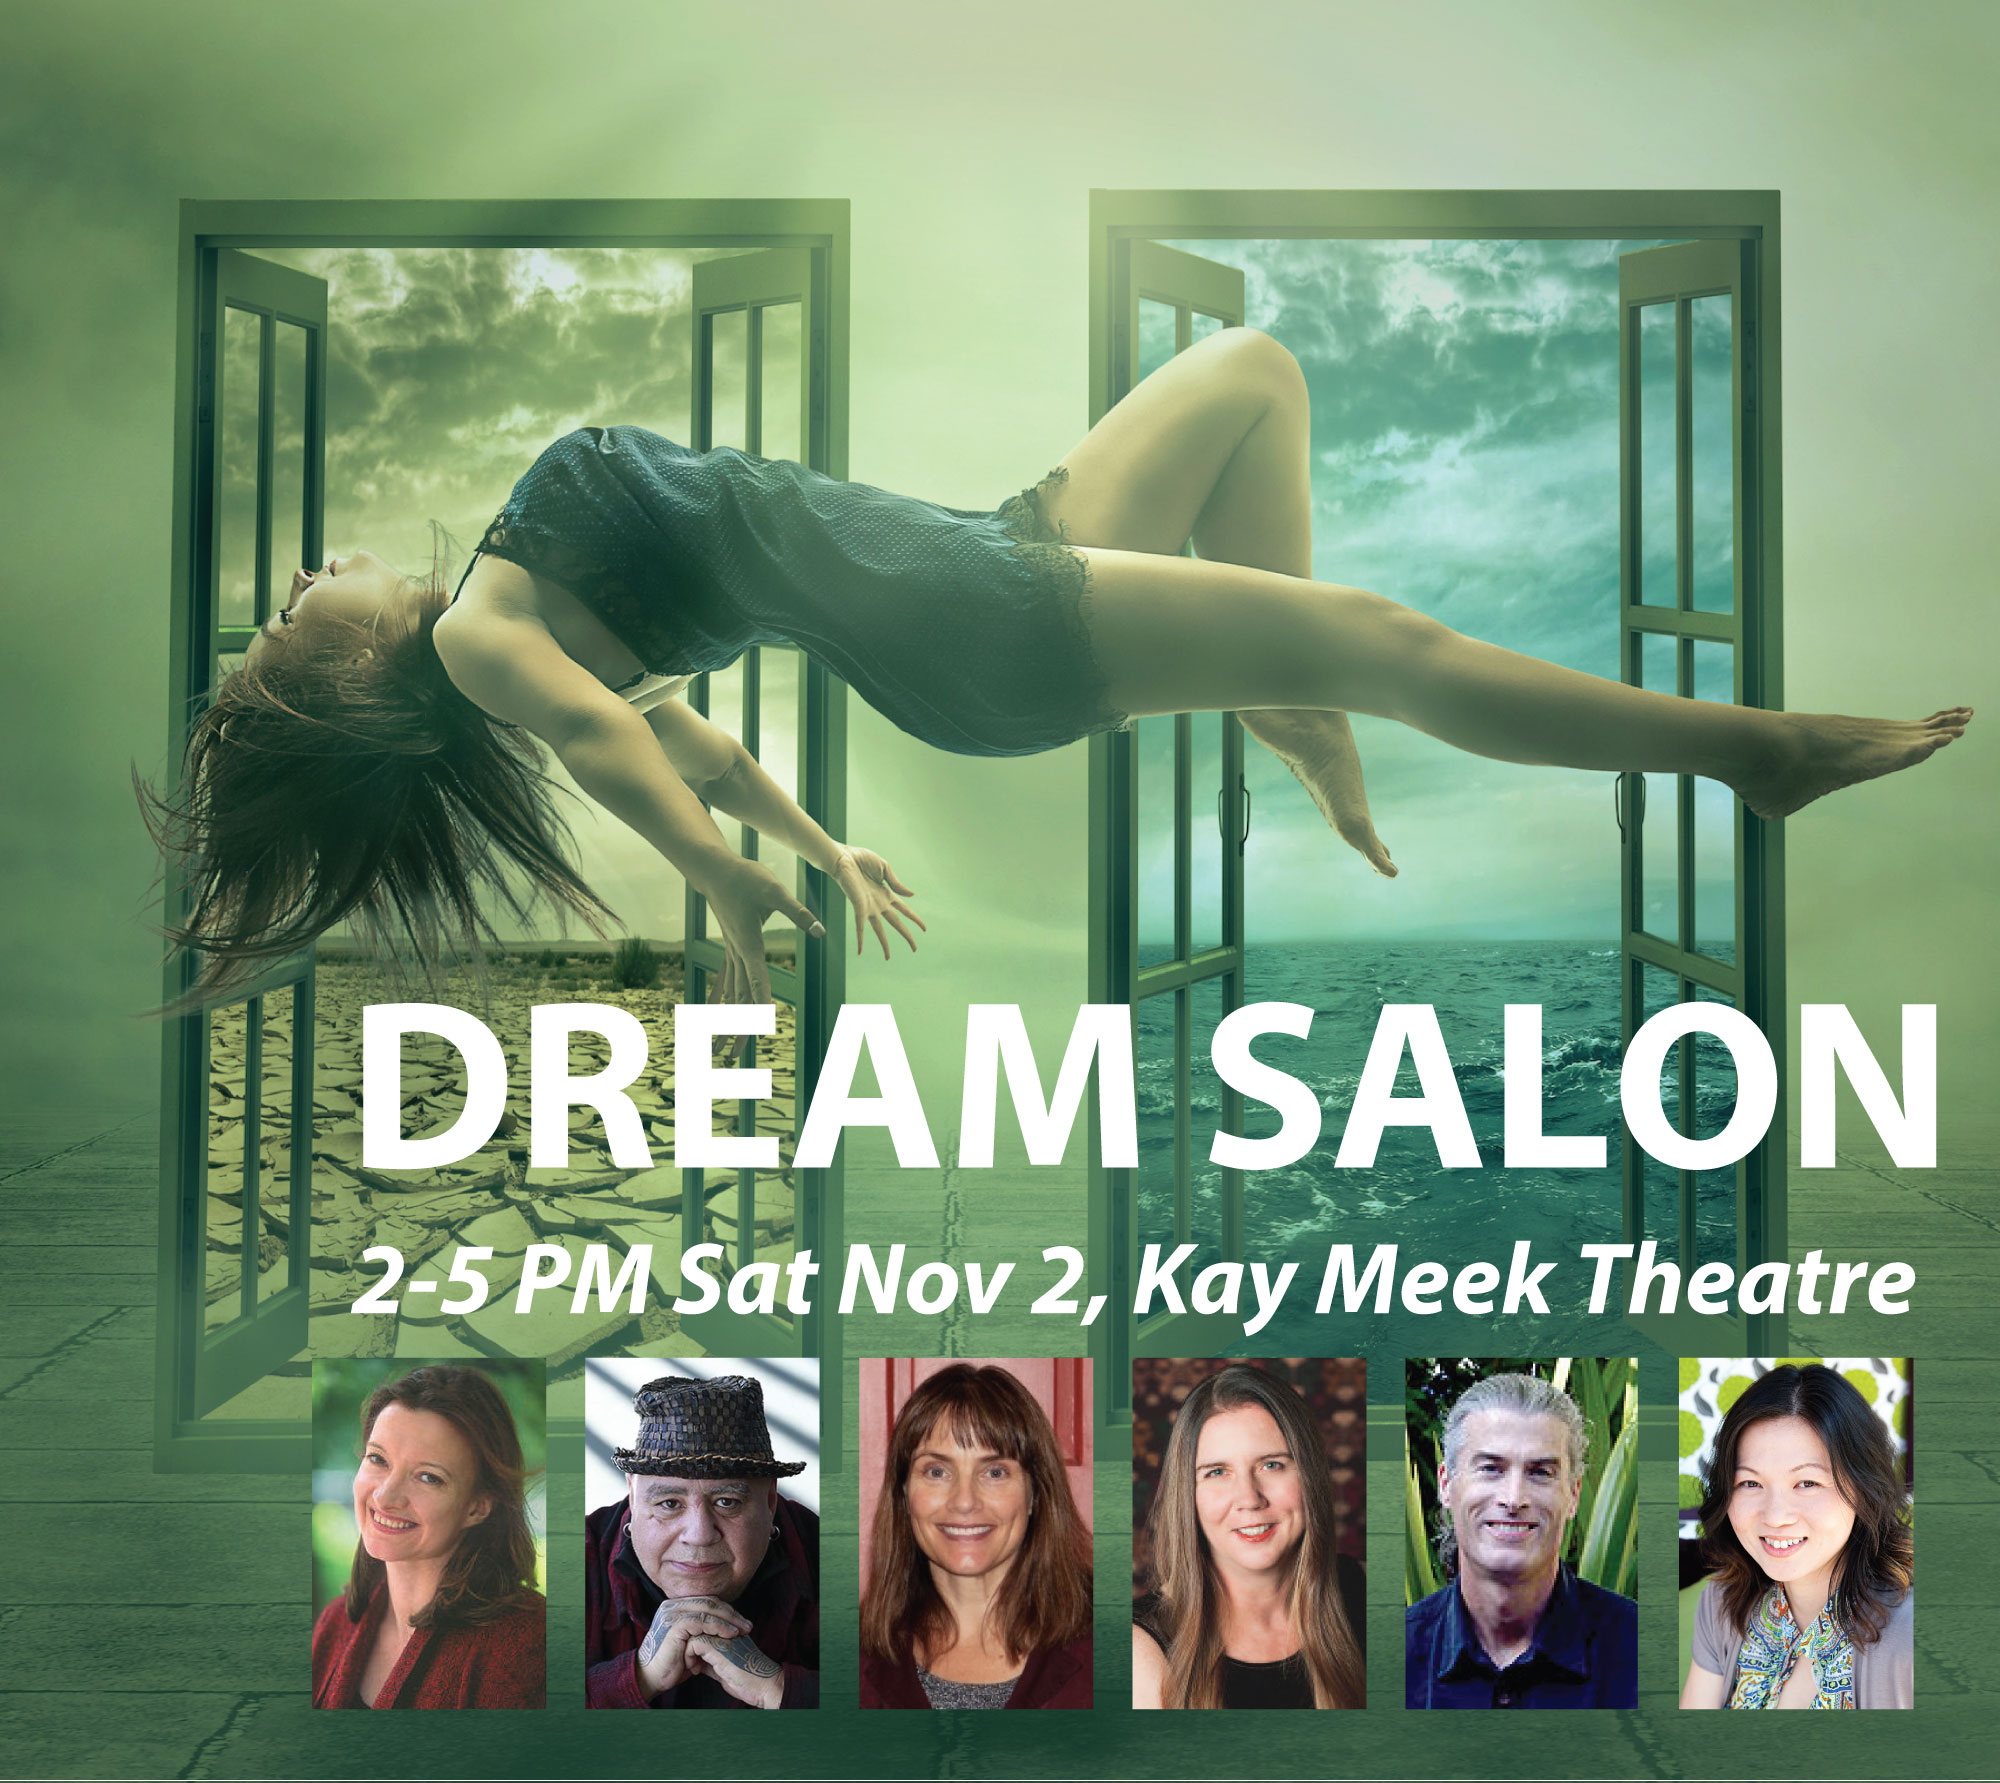 Dream-Salon-image.jpg